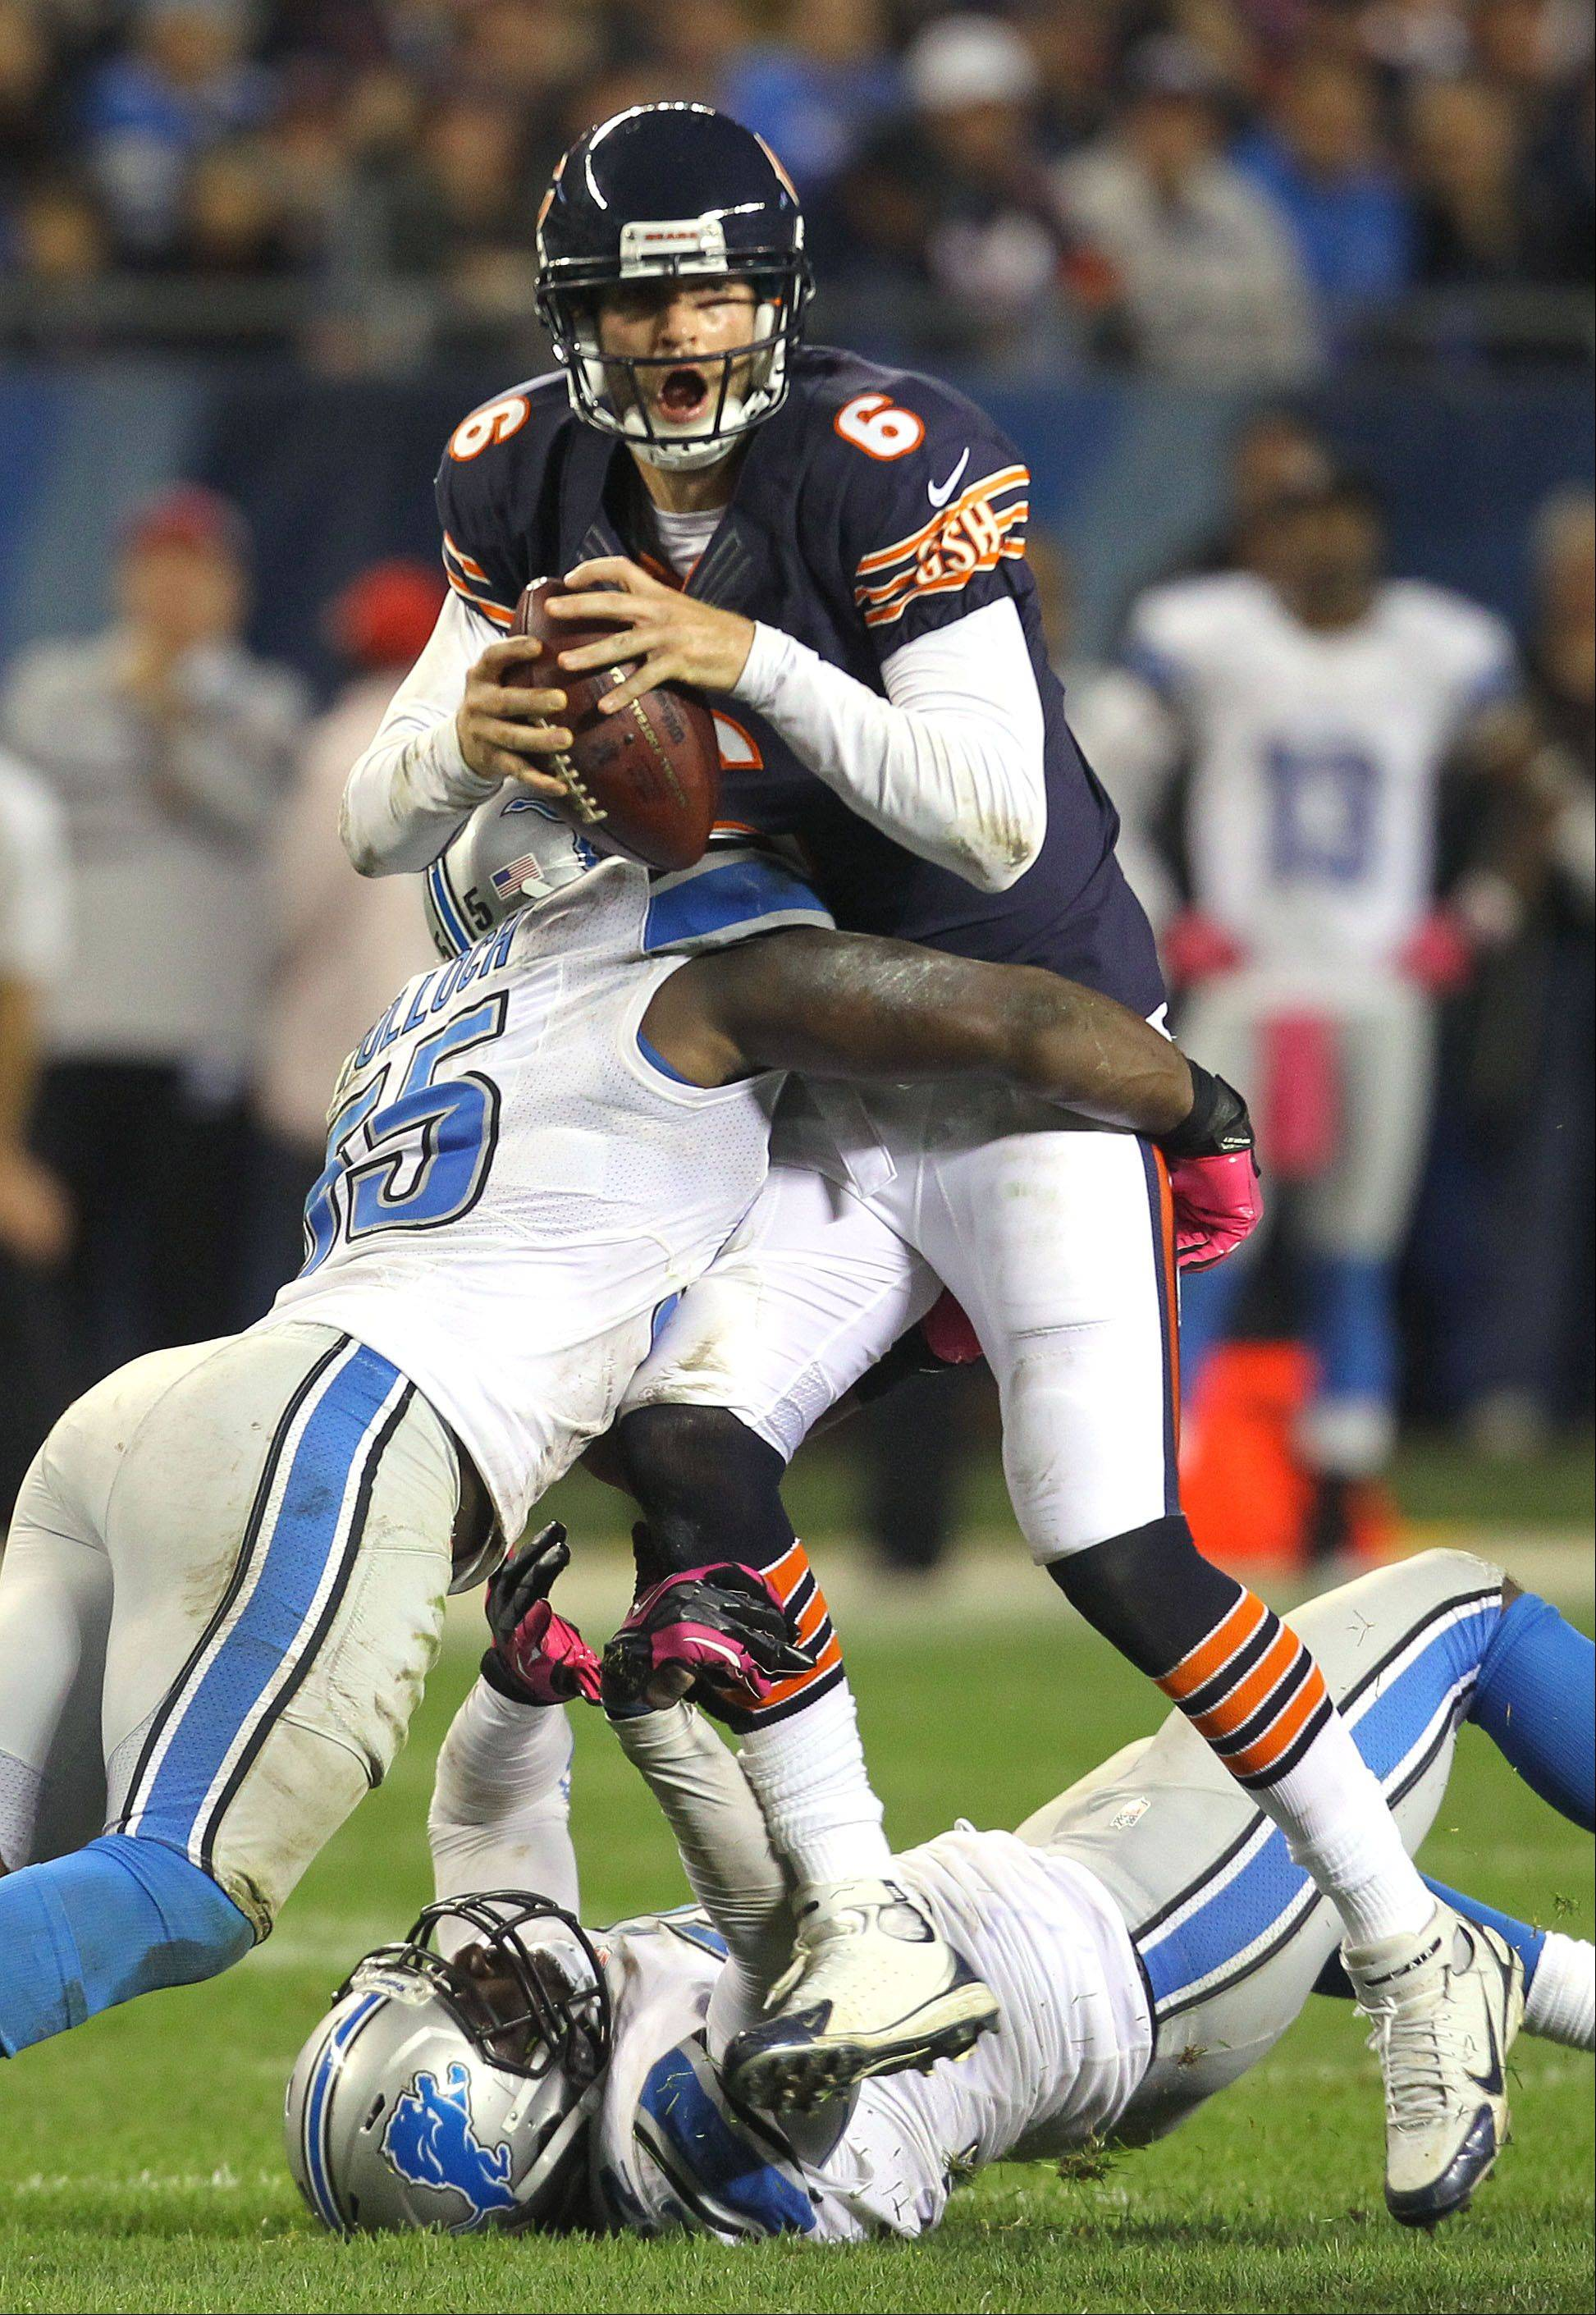 Chicago Bears quarterback Jay Cutler is sacked by Detroit Lions middle linebacker Stephen Tulloch .